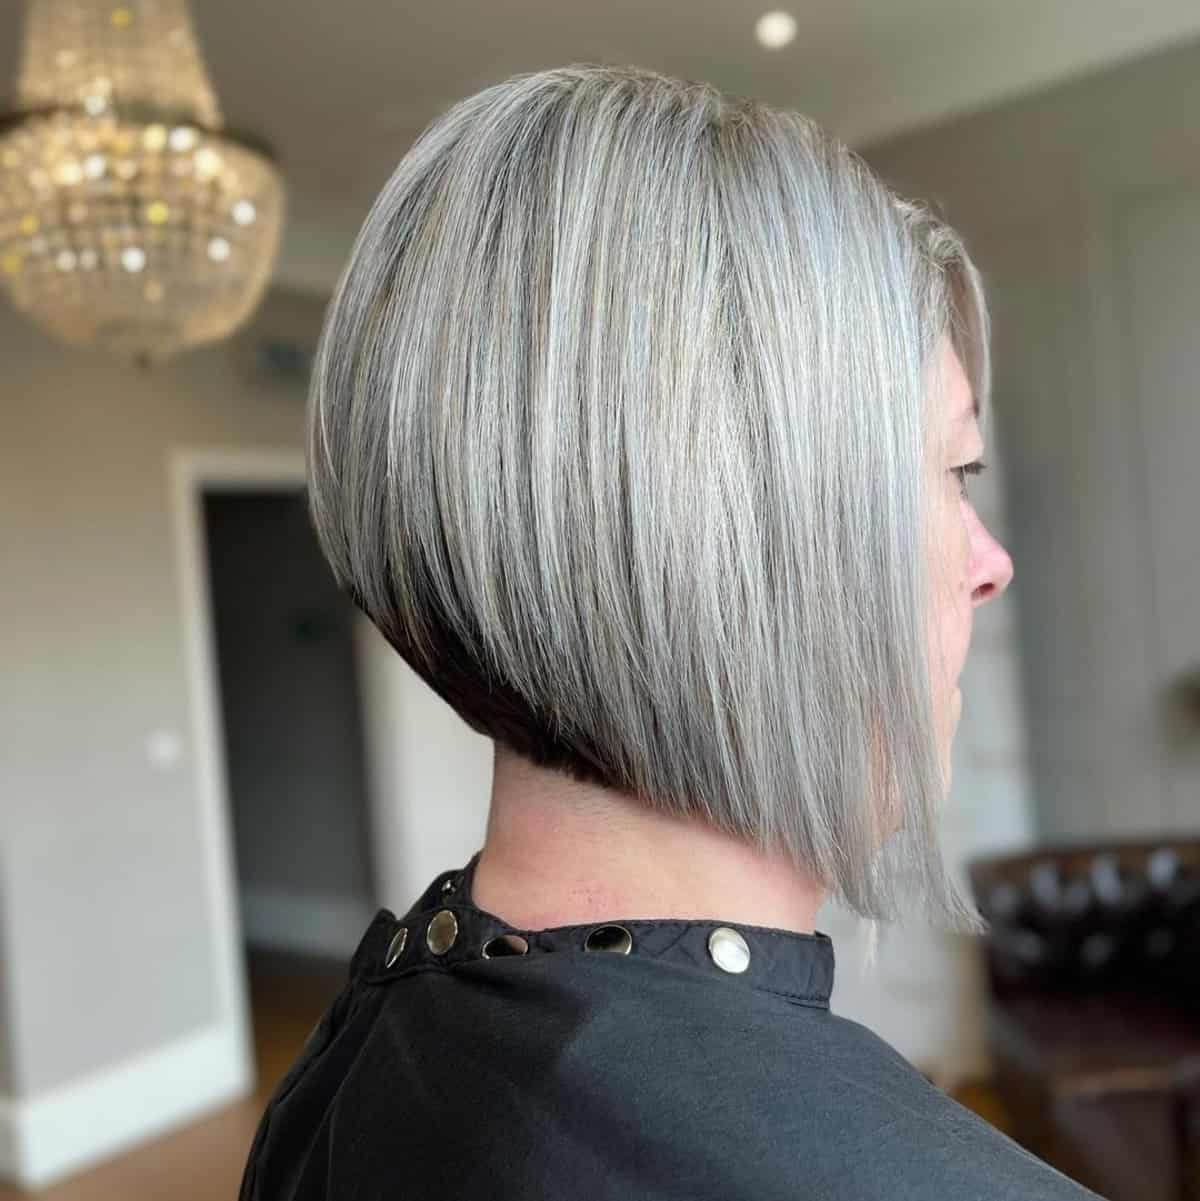 Medium Length Haircuts For Women Over 50 2019 60